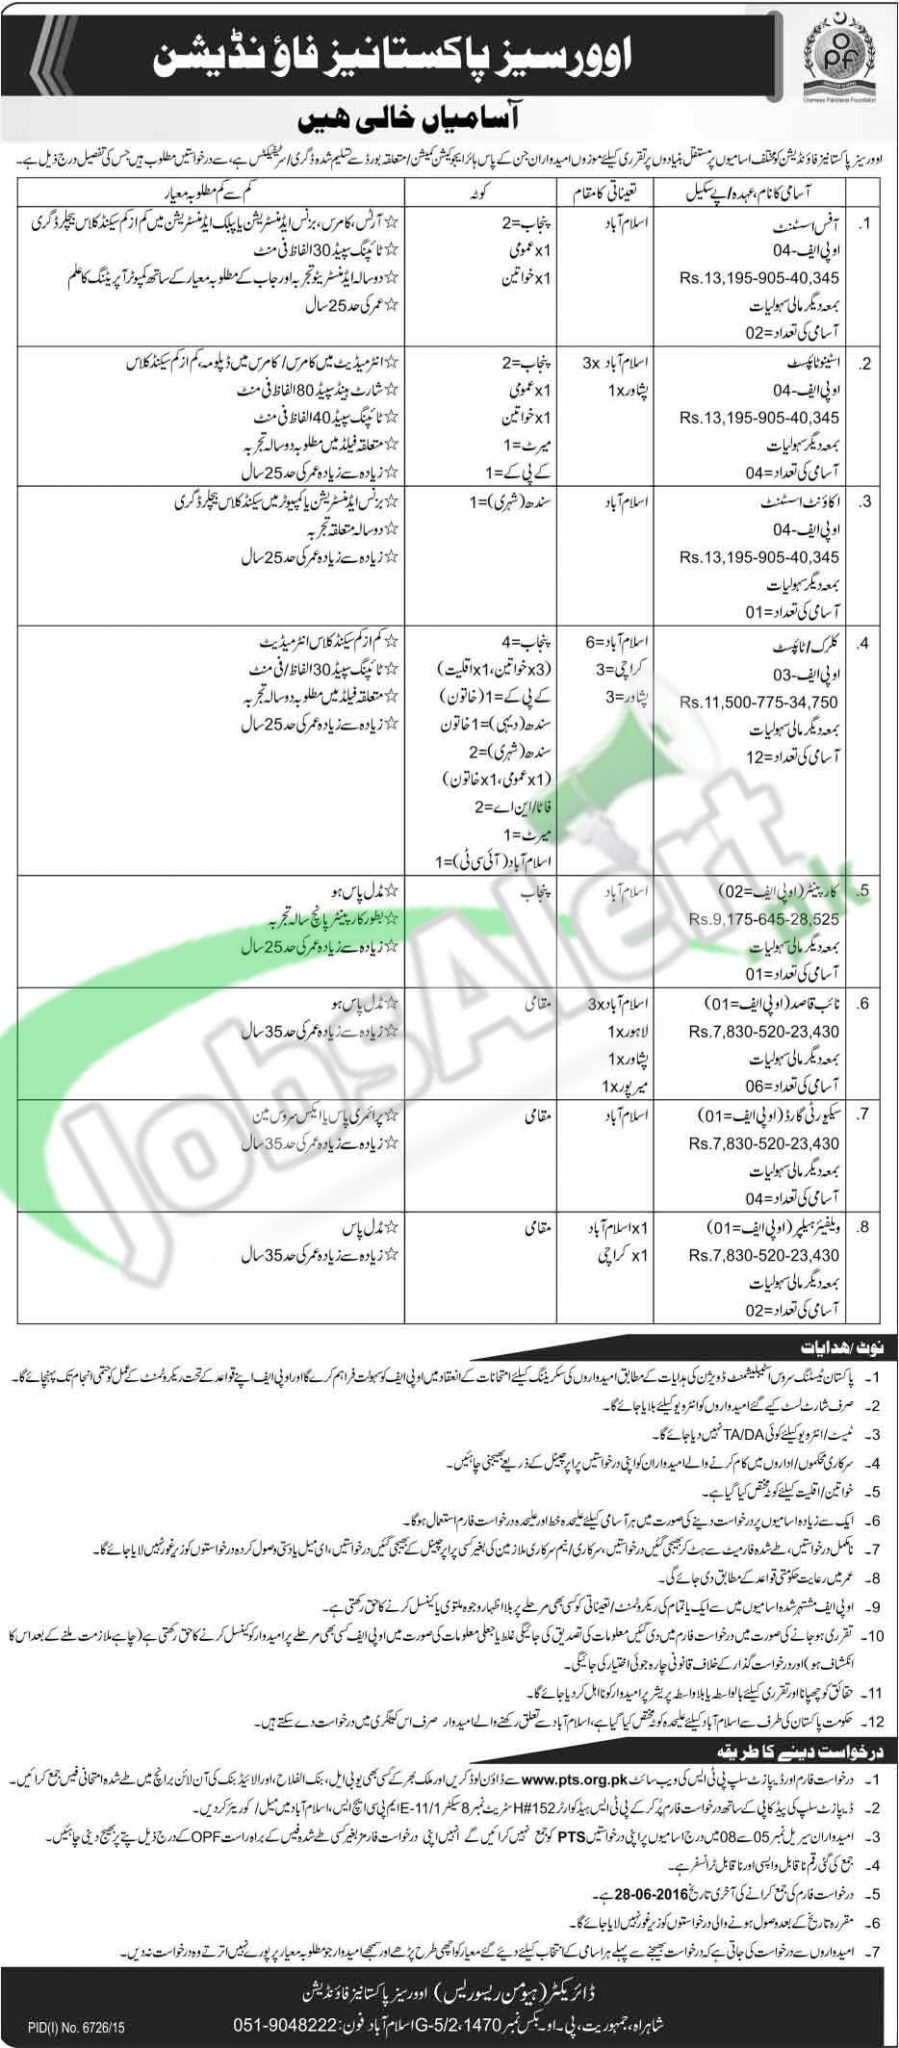 Current Jobs in Overseas Pakistani Foundation 2016 PTS Test